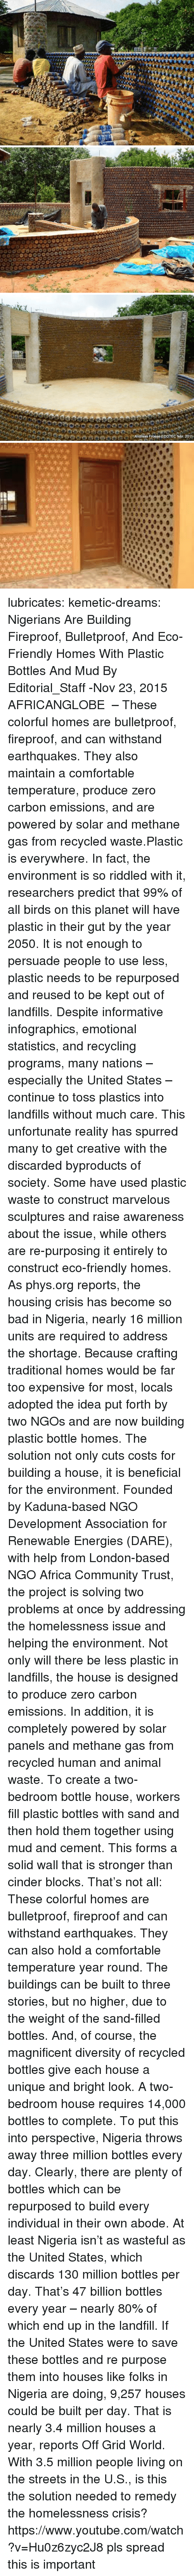 Africa, Bad, and Comfortable: lubricates:  kemetic-dreams:   Nigerians Are Building Fireproof, Bulletproof, And Eco-Friendly Homes With Plastic Bottles And Mud By Editorial_Staff -Nov 23, 2015   AFRICANGLOBE  – These colorful homes are bulletproof, fireproof, and can withstand earthquakes. They also maintain a comfortable temperature, produce zero carbon emissions, and are powered by solar and methane gas from recycled waste.Plastic is everywhere. In fact, the environment is so riddled with it, researchers predict that 99% of all birds on this planet will have plastic in their gut by the year 2050. It is not enough to persuade people to use less, plastic needs to be repurposed and reused to be kept out of landfills. Despite informative infographics, emotional statistics, and recycling programs, many nations – especially the United States – continue to toss plastics into landfills without much care. This unfortunate reality has spurred many to get creative with the discarded byproducts of society. Some have used plastic waste to construct marvelous sculptures and raise awareness about the issue, while others are re-purposing it entirely to construct eco-friendly homes. As phys.org reports, the housing crisis has become so bad in Nigeria, nearly 16 million units are required to address the shortage. Because crafting traditional homes would be far too expensive for most, locals adopted the idea put forth by two NGOs and are now building plastic bottle homes. The solution not only cuts costs for building a house, it is beneficial for the environment. Founded by Kaduna-based NGO Development Association for Renewable Energies (DARE), with help from London-based NGO Africa Community Trust, the project is solving two problems at once by addressing the homelessness issue and helping the environment. Not only will there be less plastic in landfills, the house is designed to produce zero carbon emissions. In addition, it is completely powered by solar panels and methane gas from recycled human and animal waste. To create a two-bedroom bottle house, workers fill plastic bottles with sand and then hold them together using mud and cement. This forms a solid wall that is stronger than cinder blocks. That's not all: These colorful homes are bulletproof, fireproof and can withstand earthquakes. They can also hold a comfortable temperature year round. The buildings can be built to three stories, but no higher, due to the weight of the sand-filled bottles. And, of course, the magnificent diversity of recycled bottles give each house a unique and bright look. A two-bedroom house requires 14,000 bottles to complete. To put this into perspective, Nigeria throws away three million bottles every day. Clearly, there are plenty of bottles which can be repurposed to build every individual in their own abode. At least Nigeria isn't as wasteful as the United States, which discards 130 million bottles per day. That's 47 billion bottles every year – nearly 80% of which end up in the landfill.  If the United States were to save these bottles and re purpose them into houses like folks in Nigeria are doing, 9,257 houses could be built per day. That is nearly 3.4 million houses a year, reports Off Grid World. With 3.5 million people living on the streets in the U.S., is this the solution needed to remedy the homelessness crisis? https://www.youtube.com/watch?v=Hu0z6zyc2J8  pls spread this is important